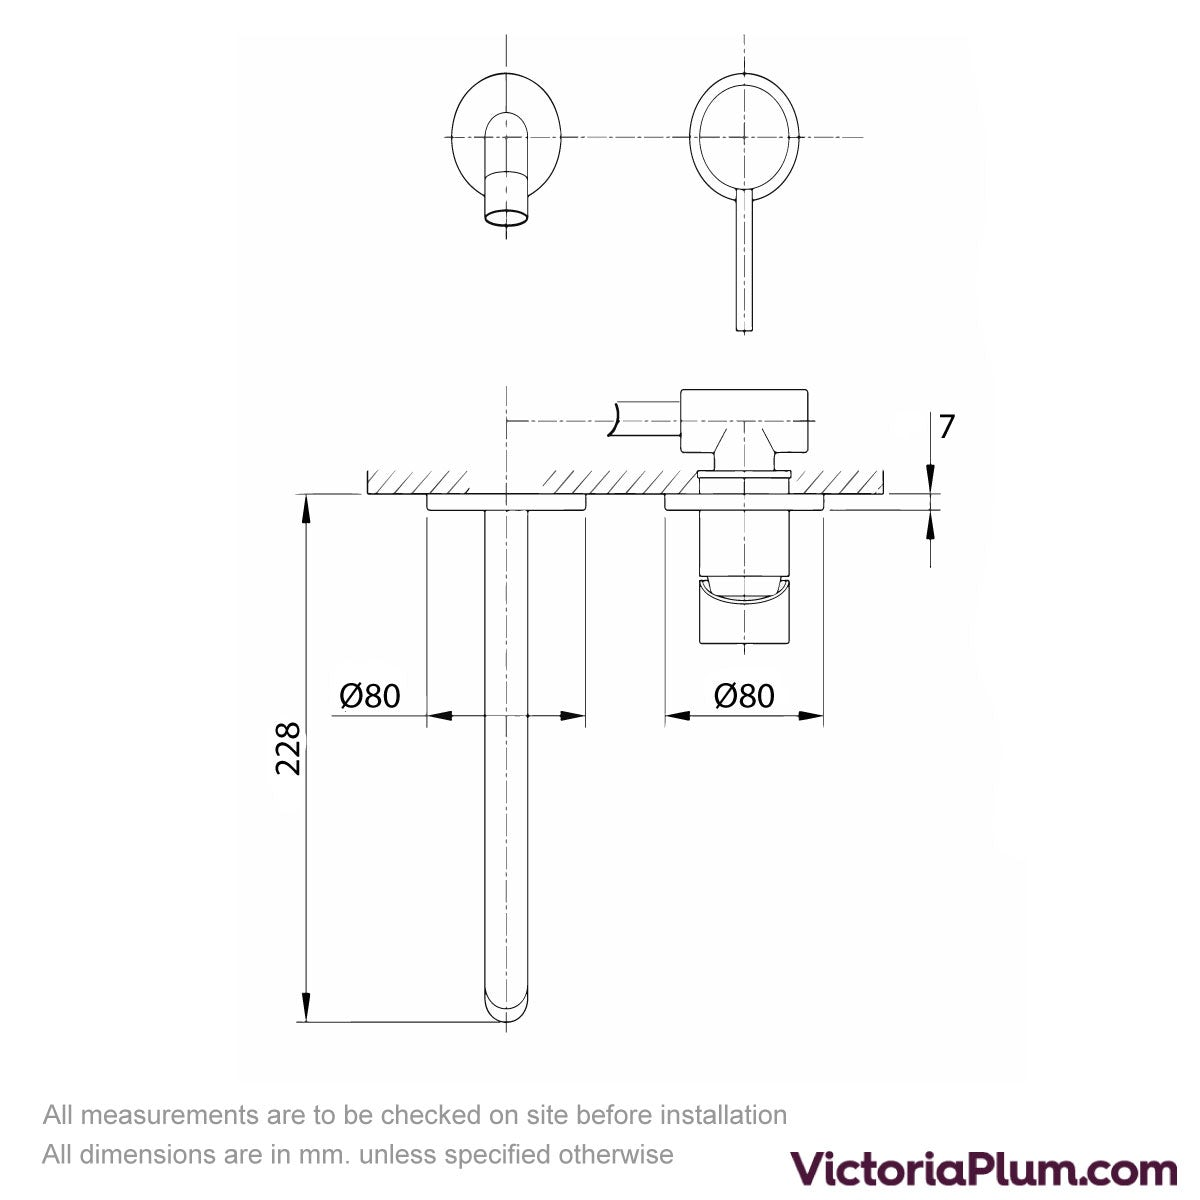 Dimensions for Mode Spencer round wall mounted gold bath mixer tap